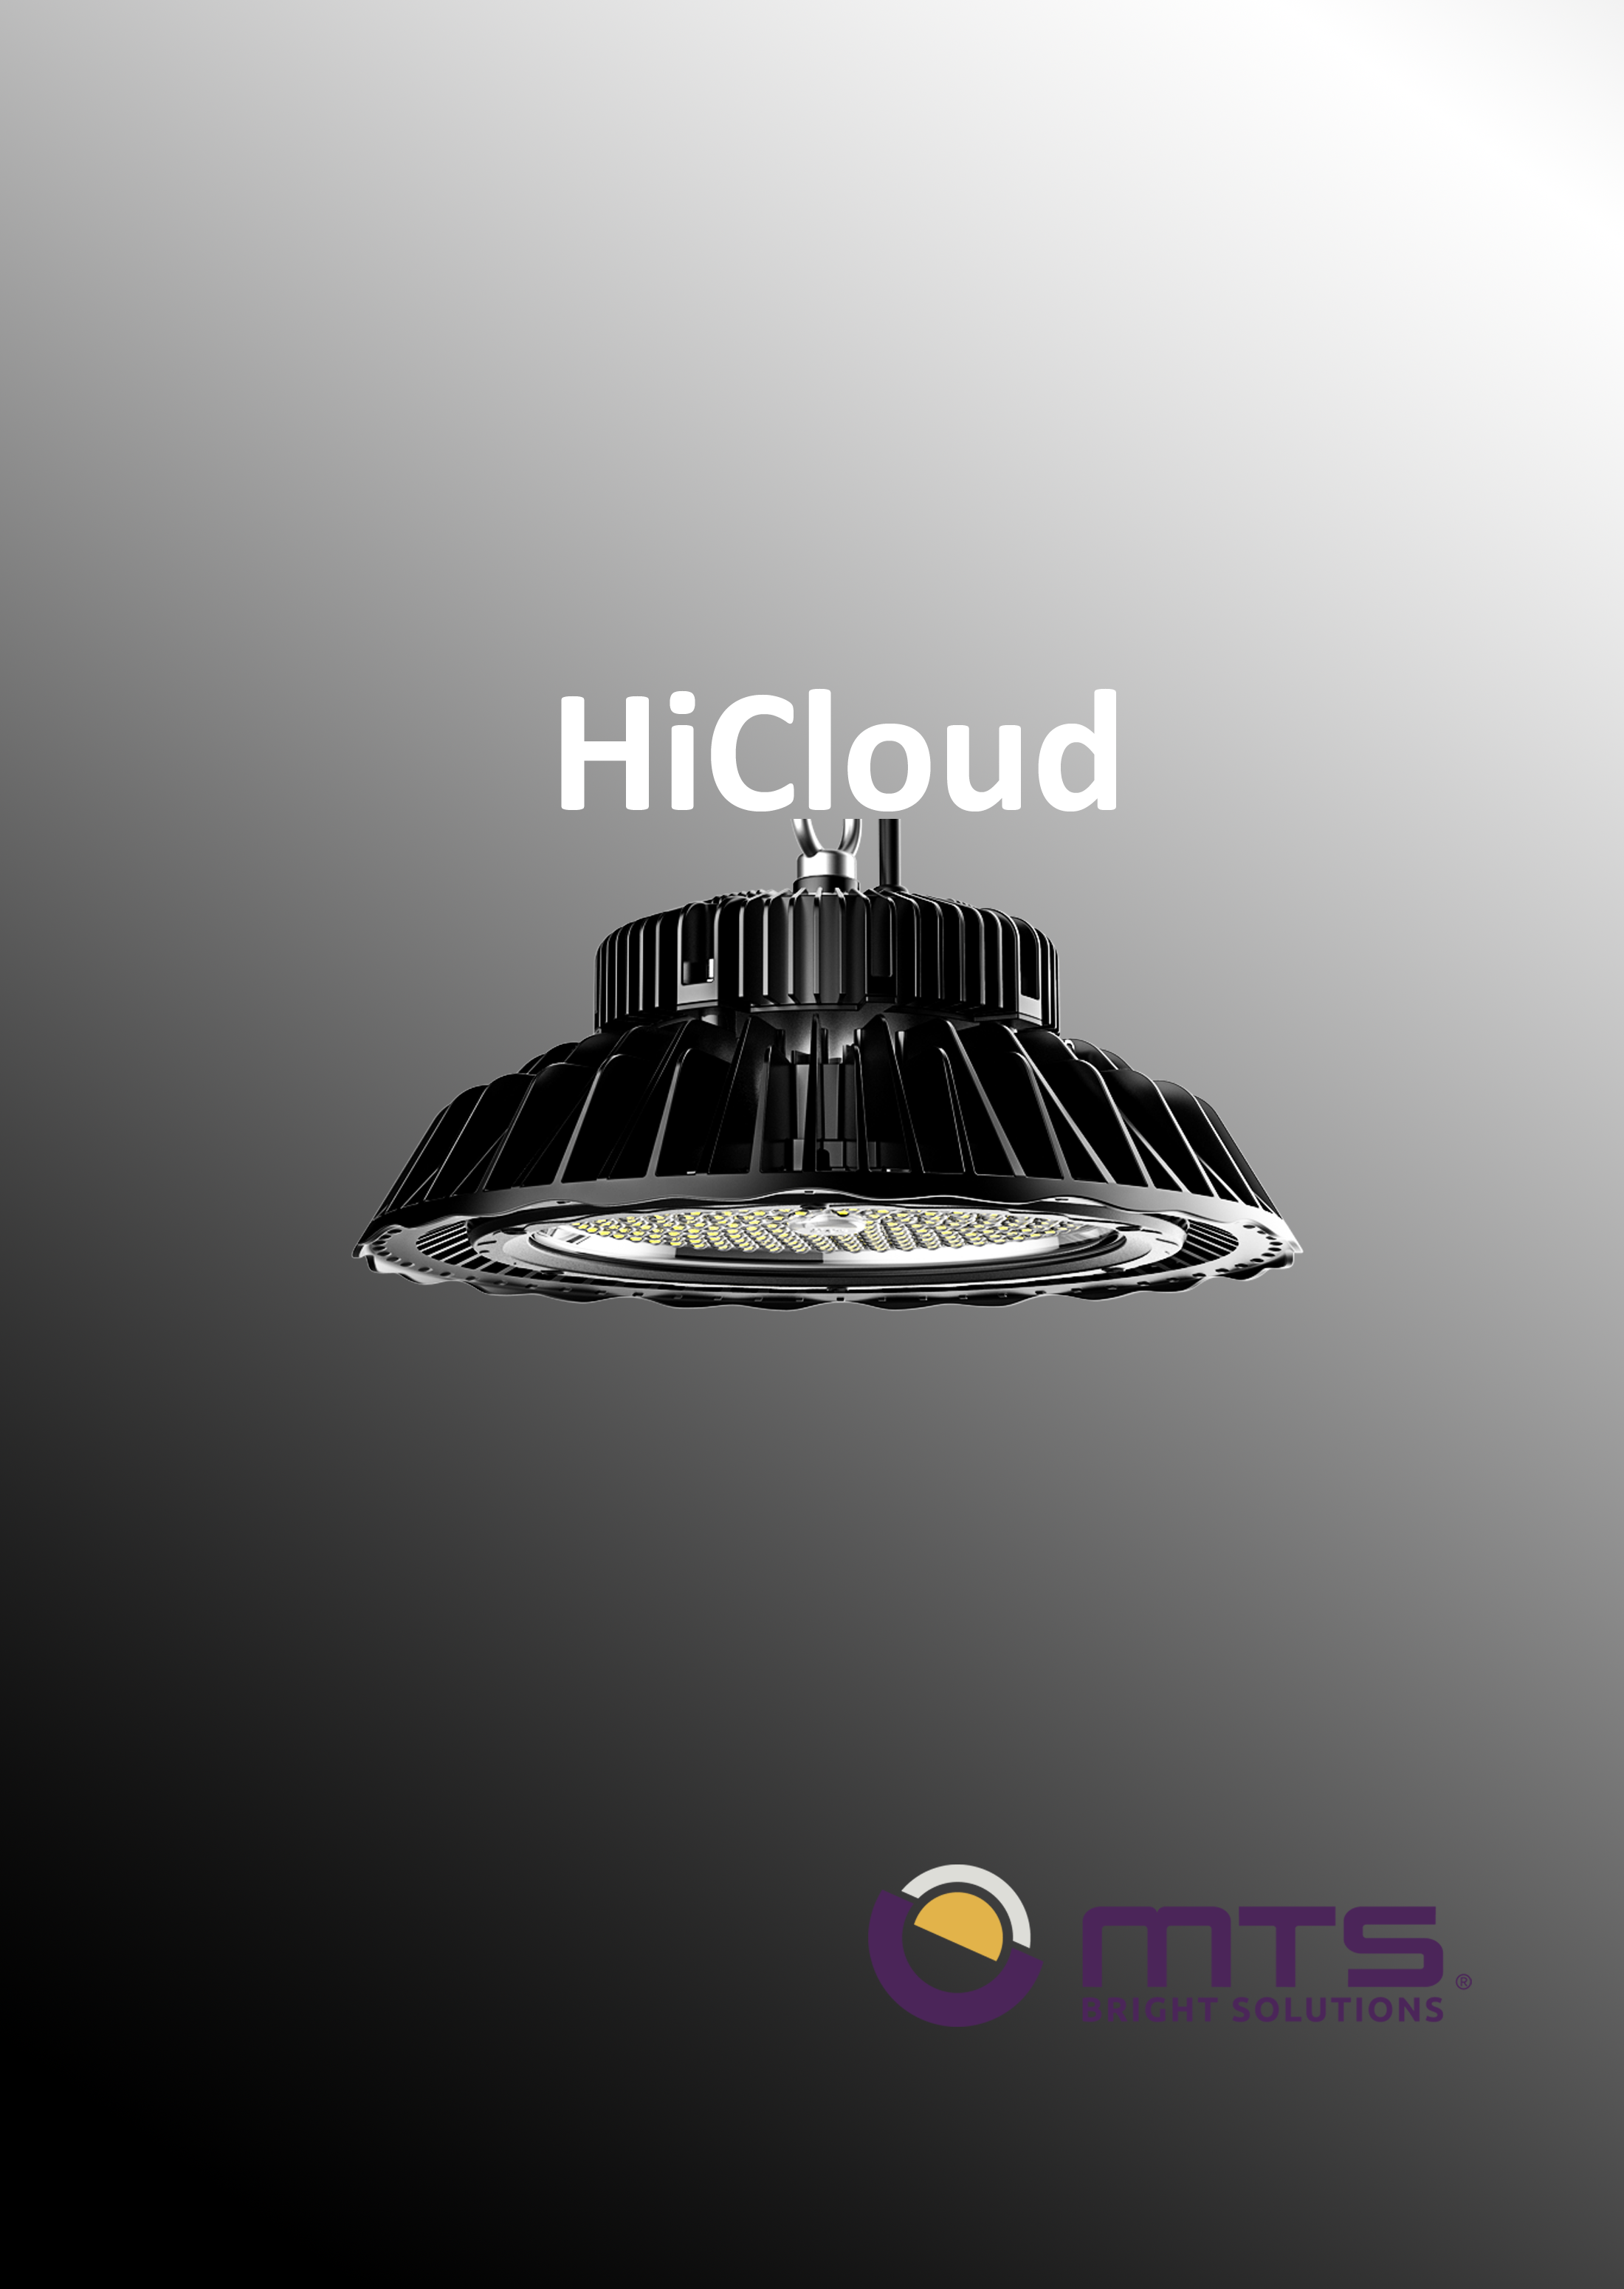 LED HiCloud Katalog Datenblätter